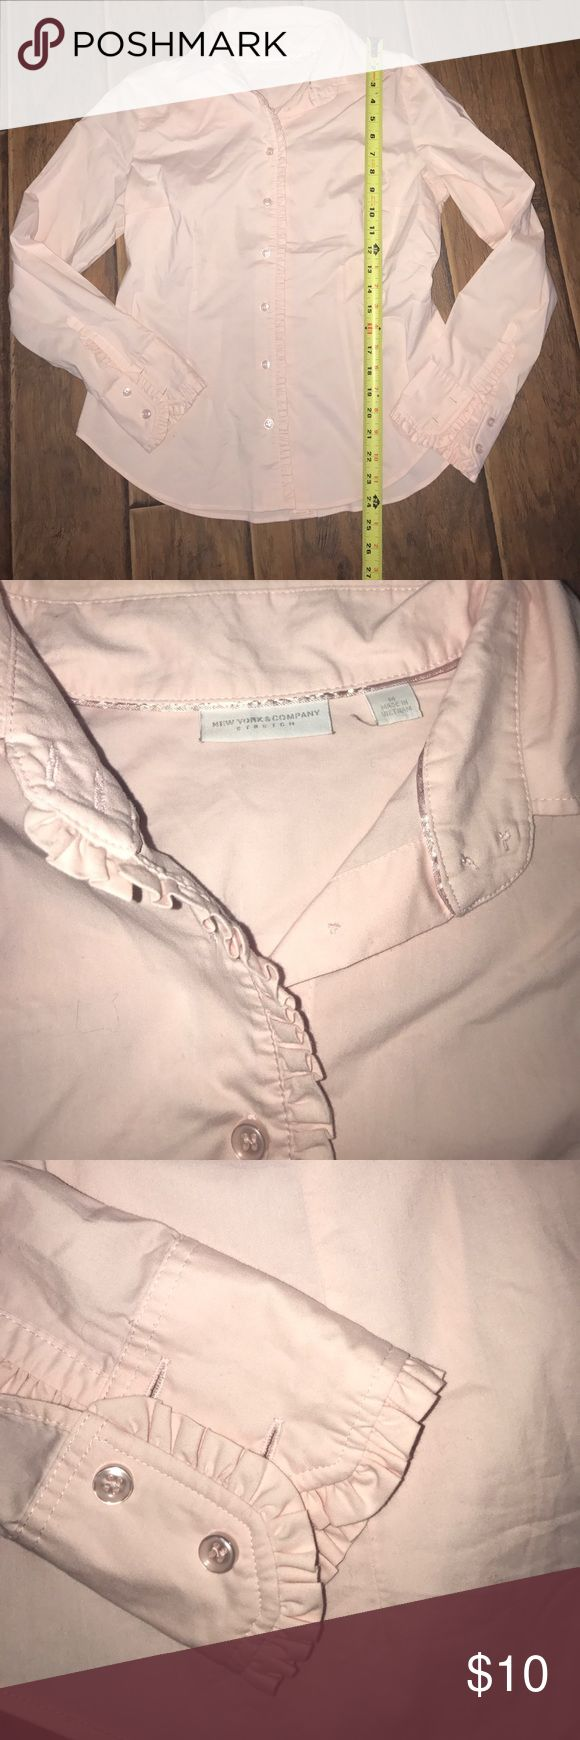 Pale pink NY & co top blouse shirt work ruffles m Pale pink. Pretty ruffle detail. 🌹Washed in cold hung to dry and never worn🌹🌺Moving and need to purge - everything going CHEAP!🌺 Bundle and send me your offers!!! 💠 New York and company express pacsun ann taylor loft roxy Hurley fox gap bloomingdales Nordstrom dress hoodie pants jeans top shirt Nike under Armour franchescas American eagle ae pink Victoria's Secret Lilly Pulitzer Calvin Klein London times surf merona bebe Jessica Simpson…